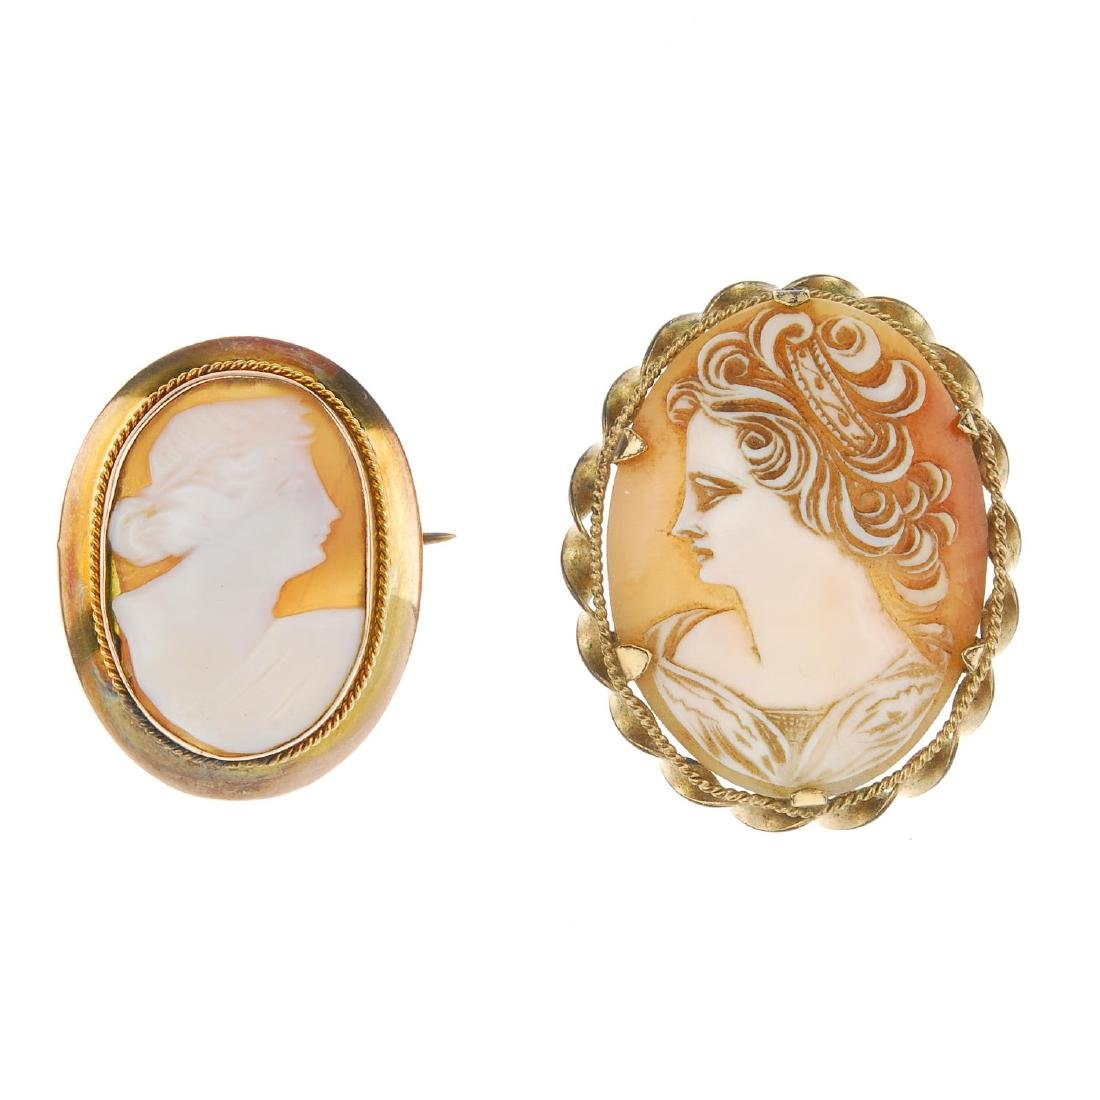 Two cameo brooches. Both of oval outline depicting a